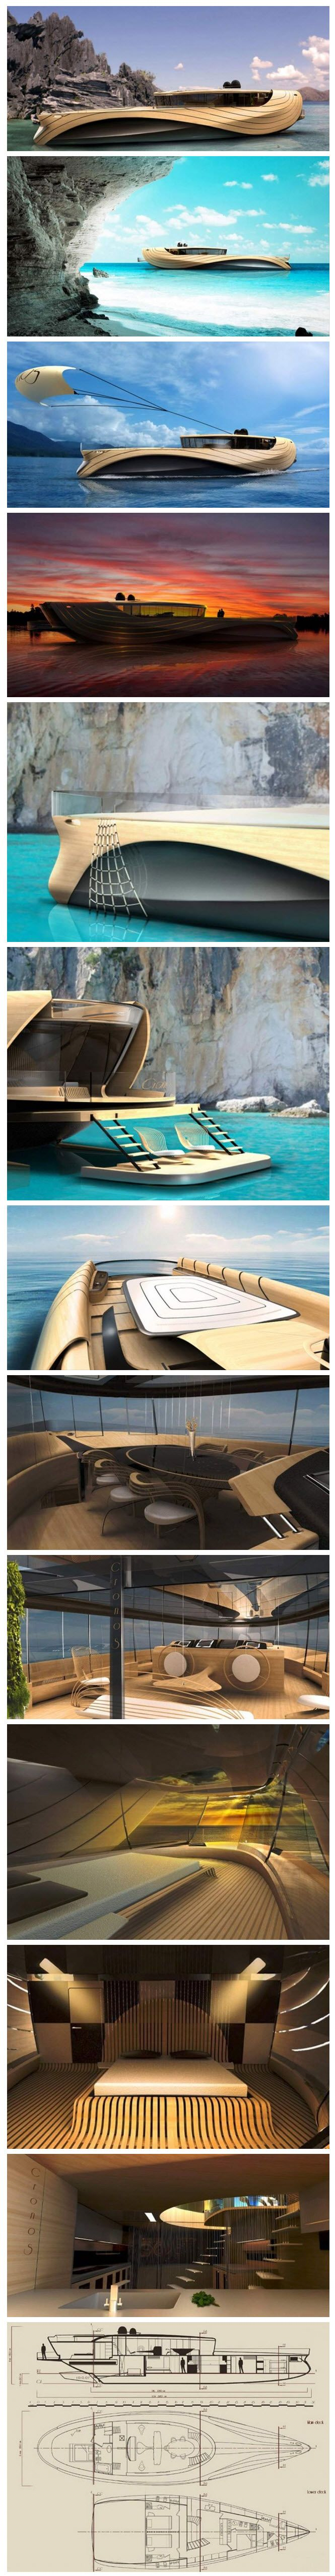 25 Best Ideas About Boat Covers On Pinterest Boat Seats